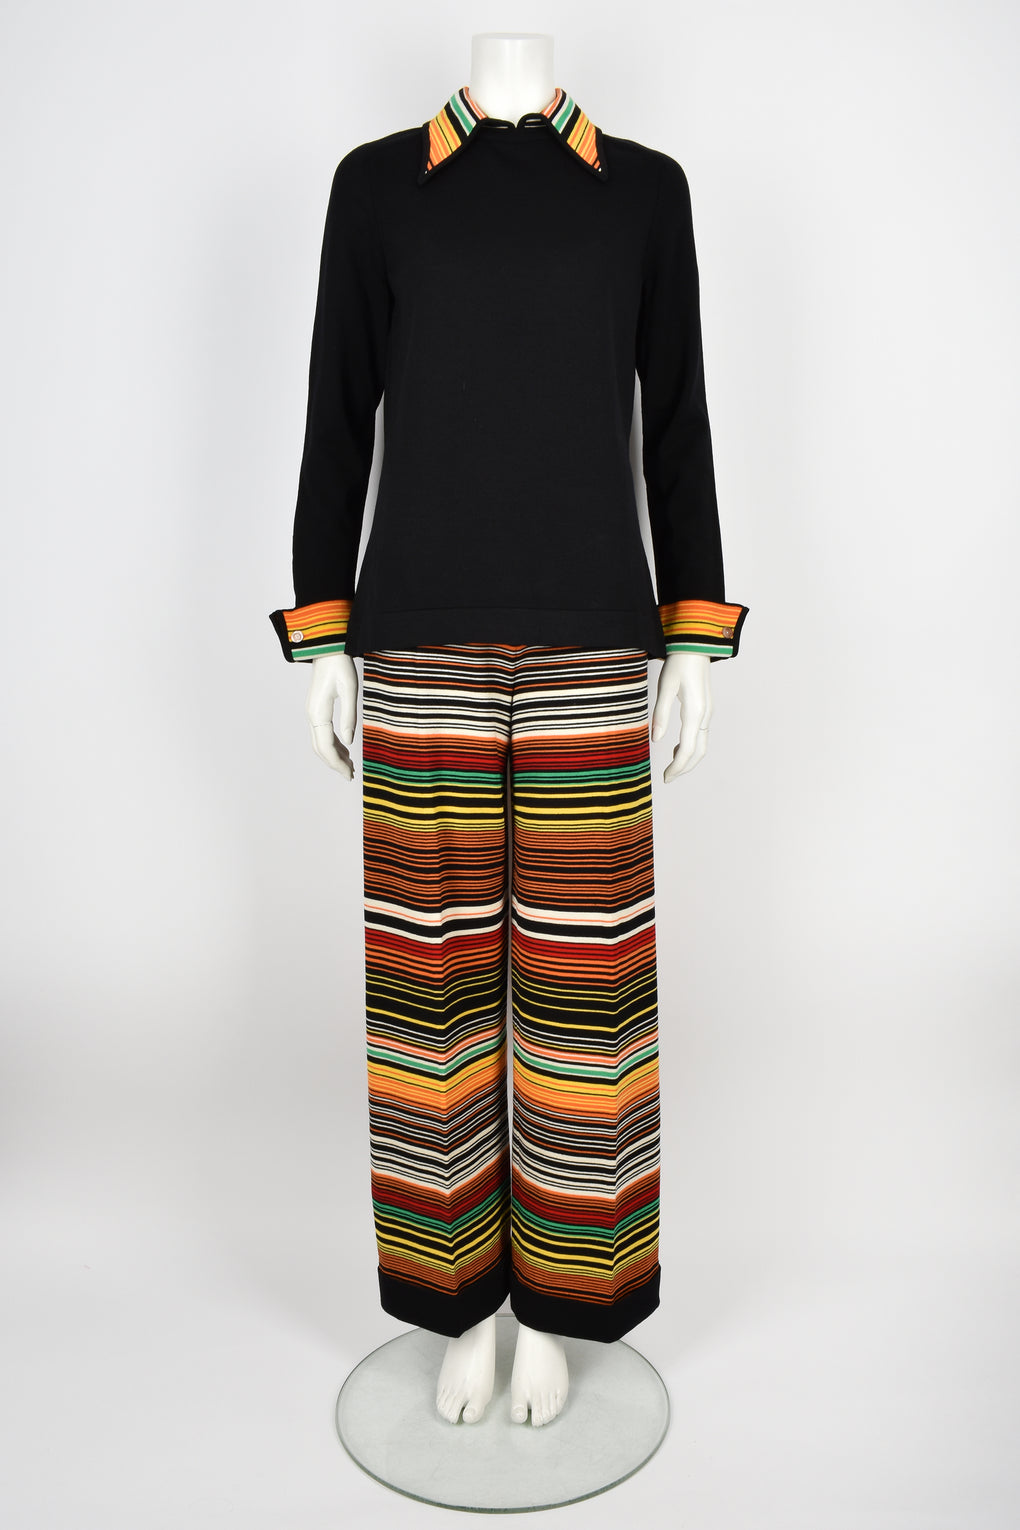 GOLDWORM 60s wool jersey trousers and top set M-L